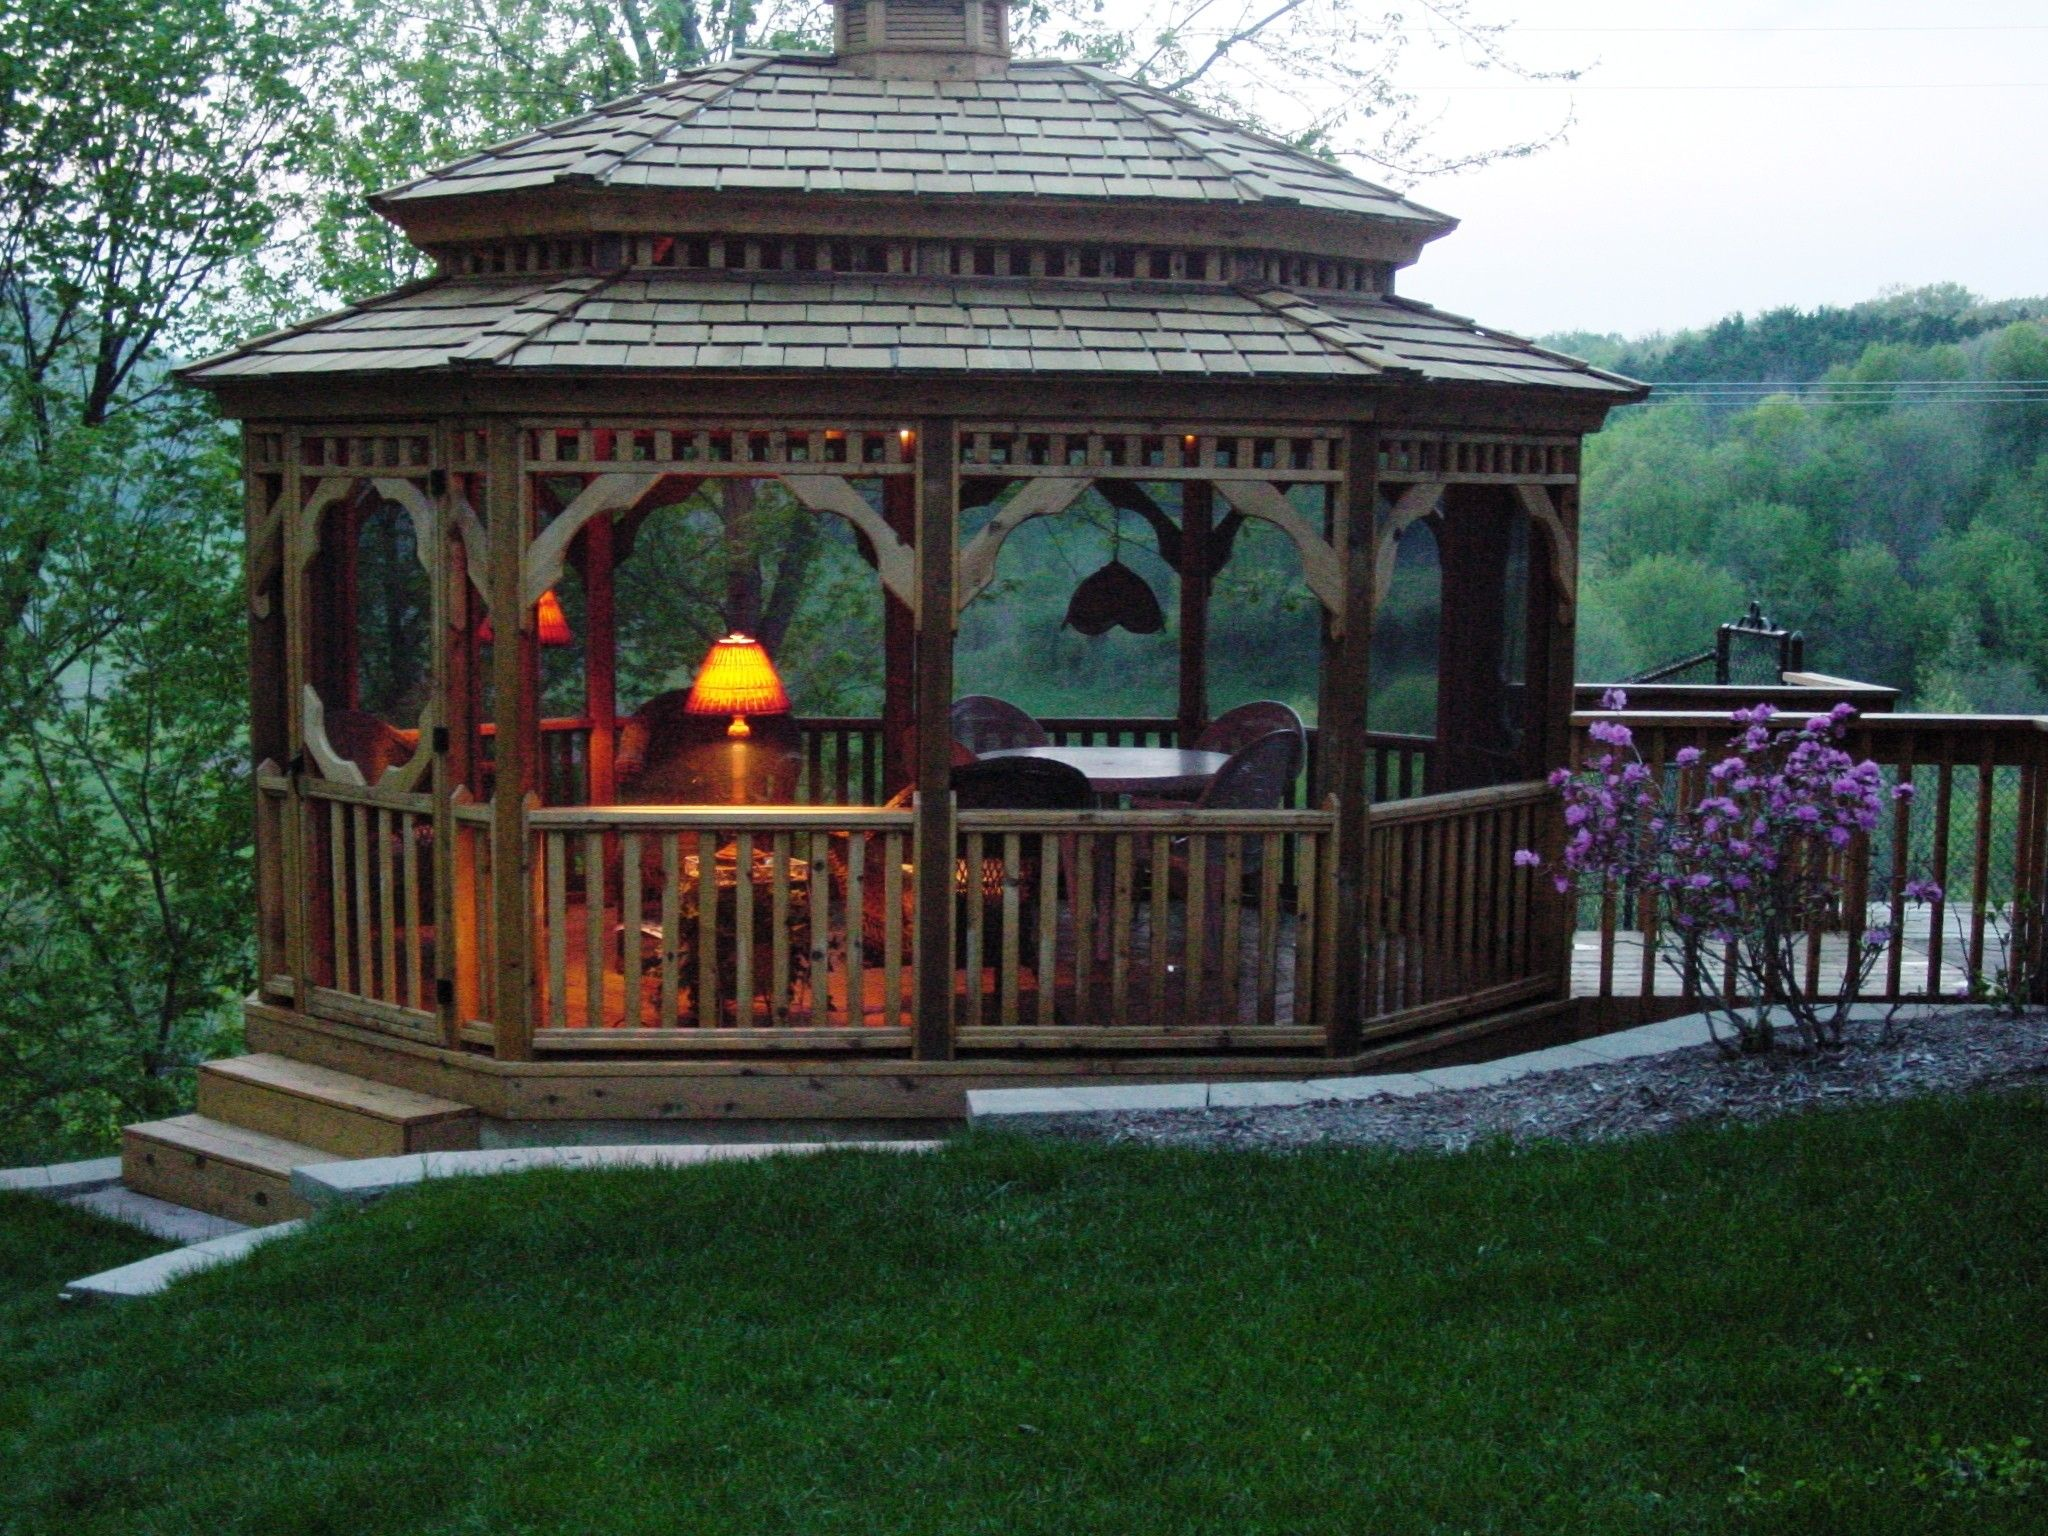 Furniture Garden Exterior Outdoor Party Light Ideas Terrific Barn Wood Double Roof Enclosed Porch Lights Gazebo Patio Ideas With Porch Alluring Exterior As Insp